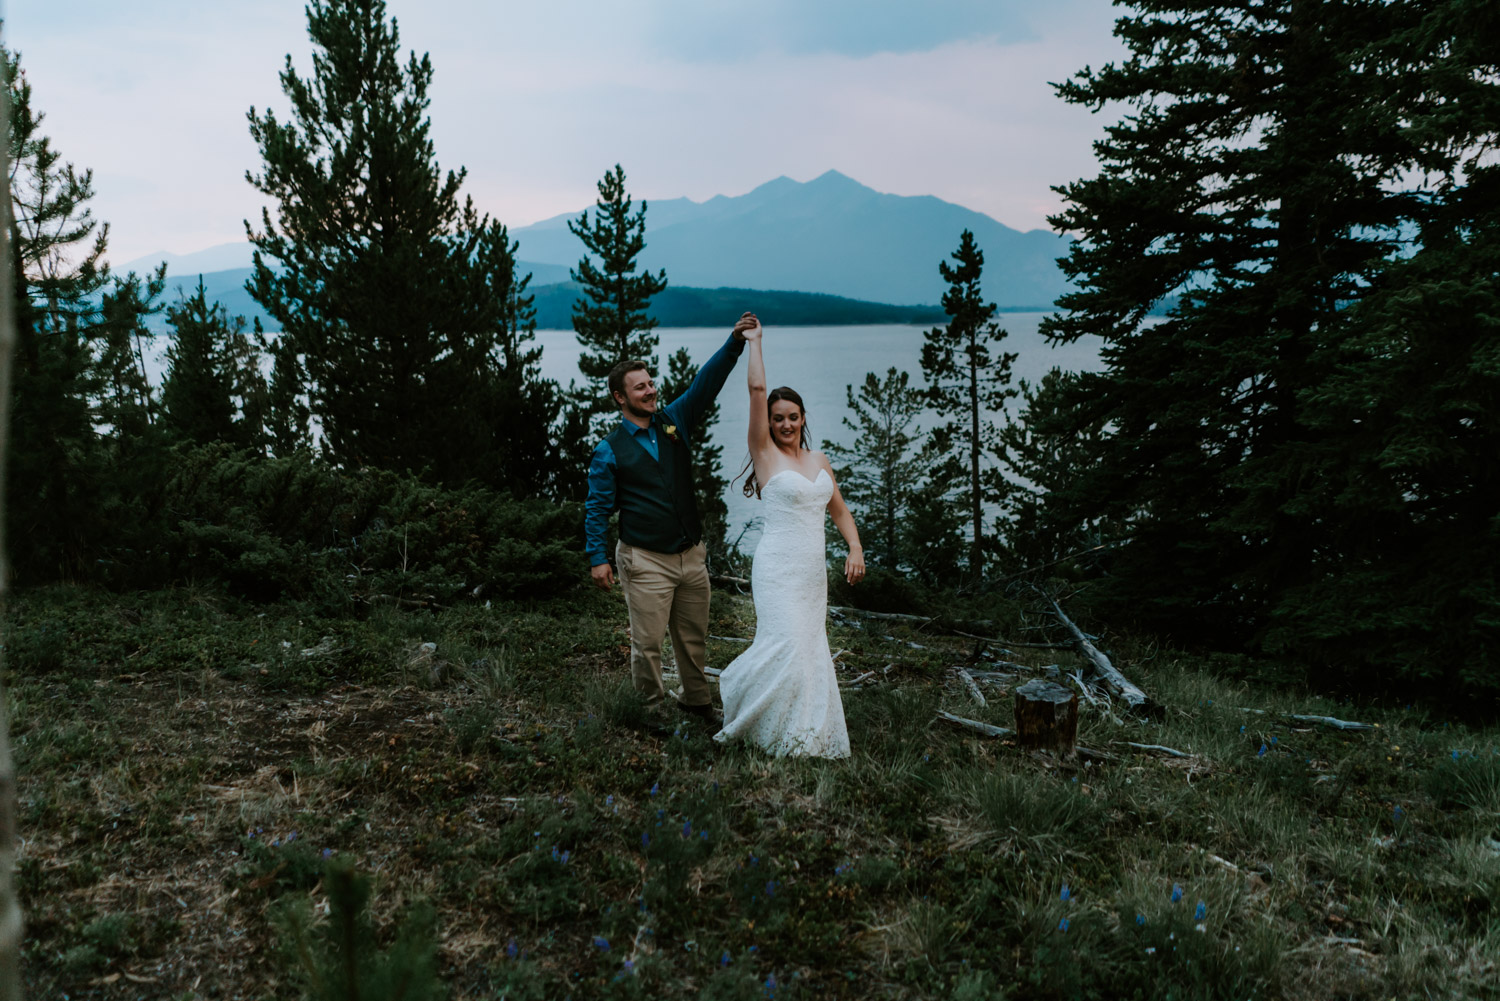 Beth_Jeff_Colorado_Wedding_MegONeillPhotography__180721_130